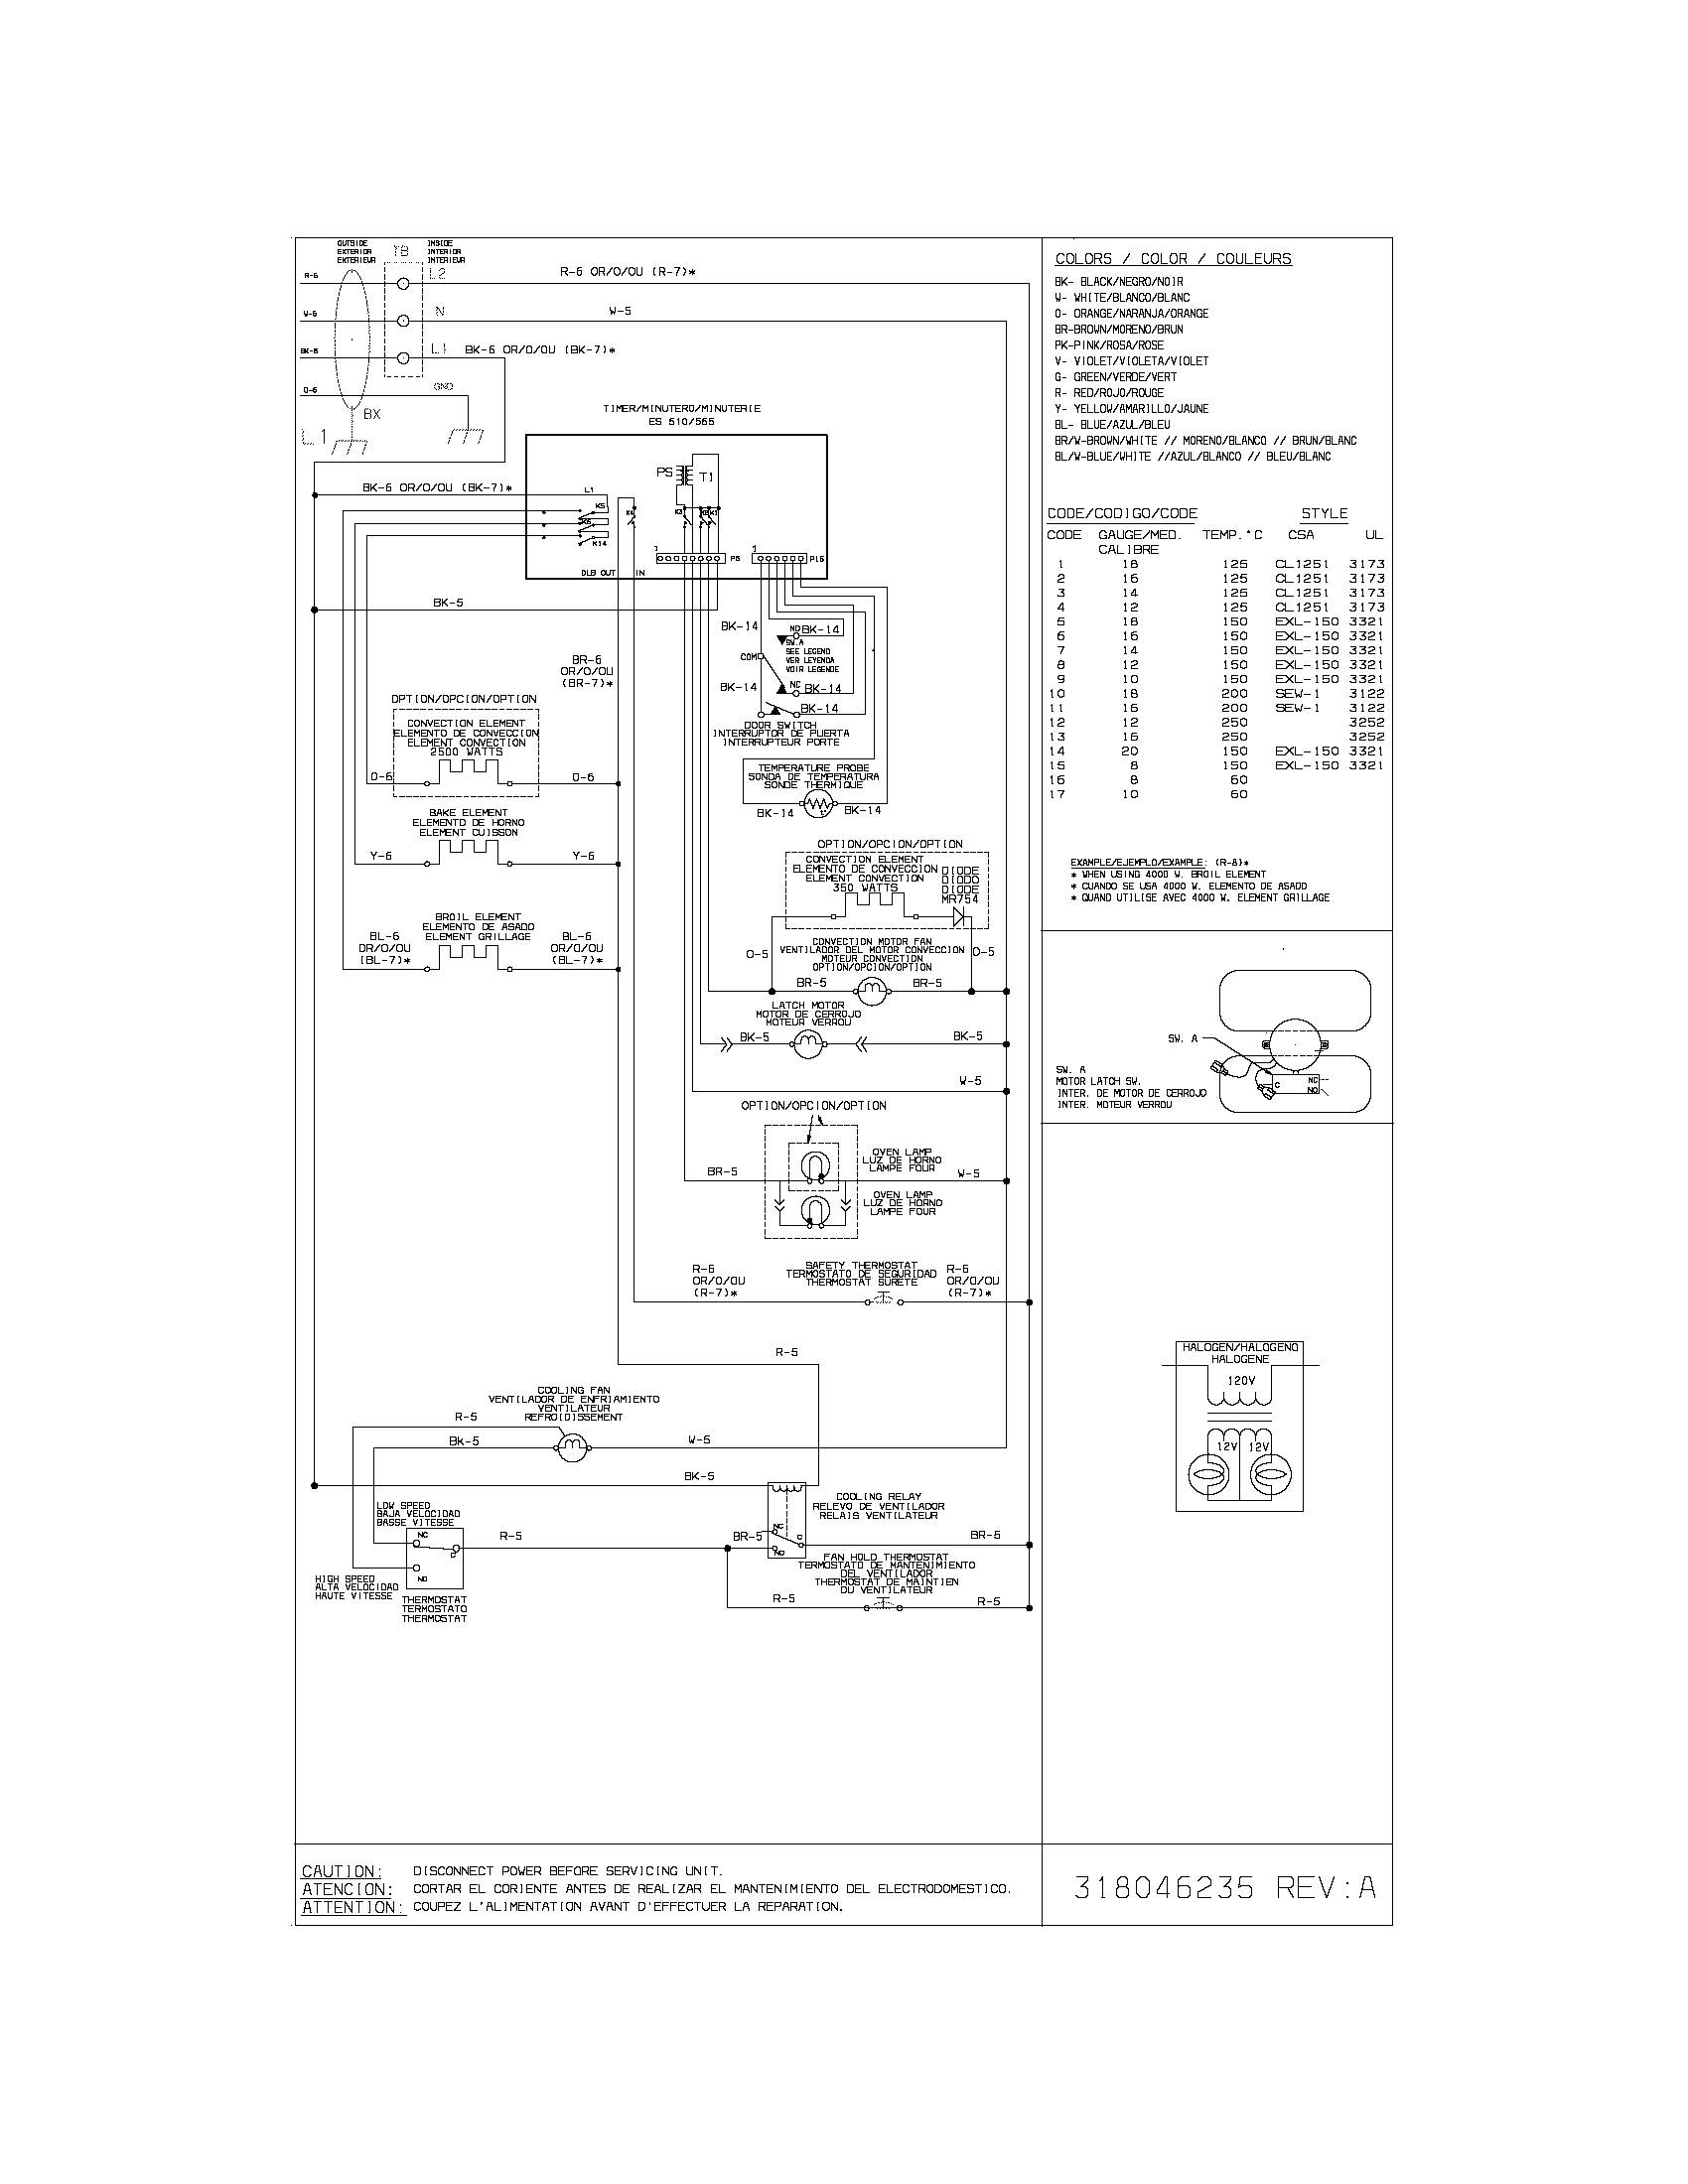 Frigidaire Oven Wiring Diagram | Wiring Liry on frigidaire oven wiring diagram model ples399ecf, frigidaire dryer parts timer knob, frigidaire electric oven parts, frigidaire oven parts diagram, dishwasher diagram, ge gas range parts diagram, frigidaire dryer parts diagram, frigidaire electric oven sensor, frigidaire gallery dryer diagram, timer control circuit diagram, kitchenaid superba ice maker diagram, frigidaire electric dryer diagram, frigidaire oven model numbers,